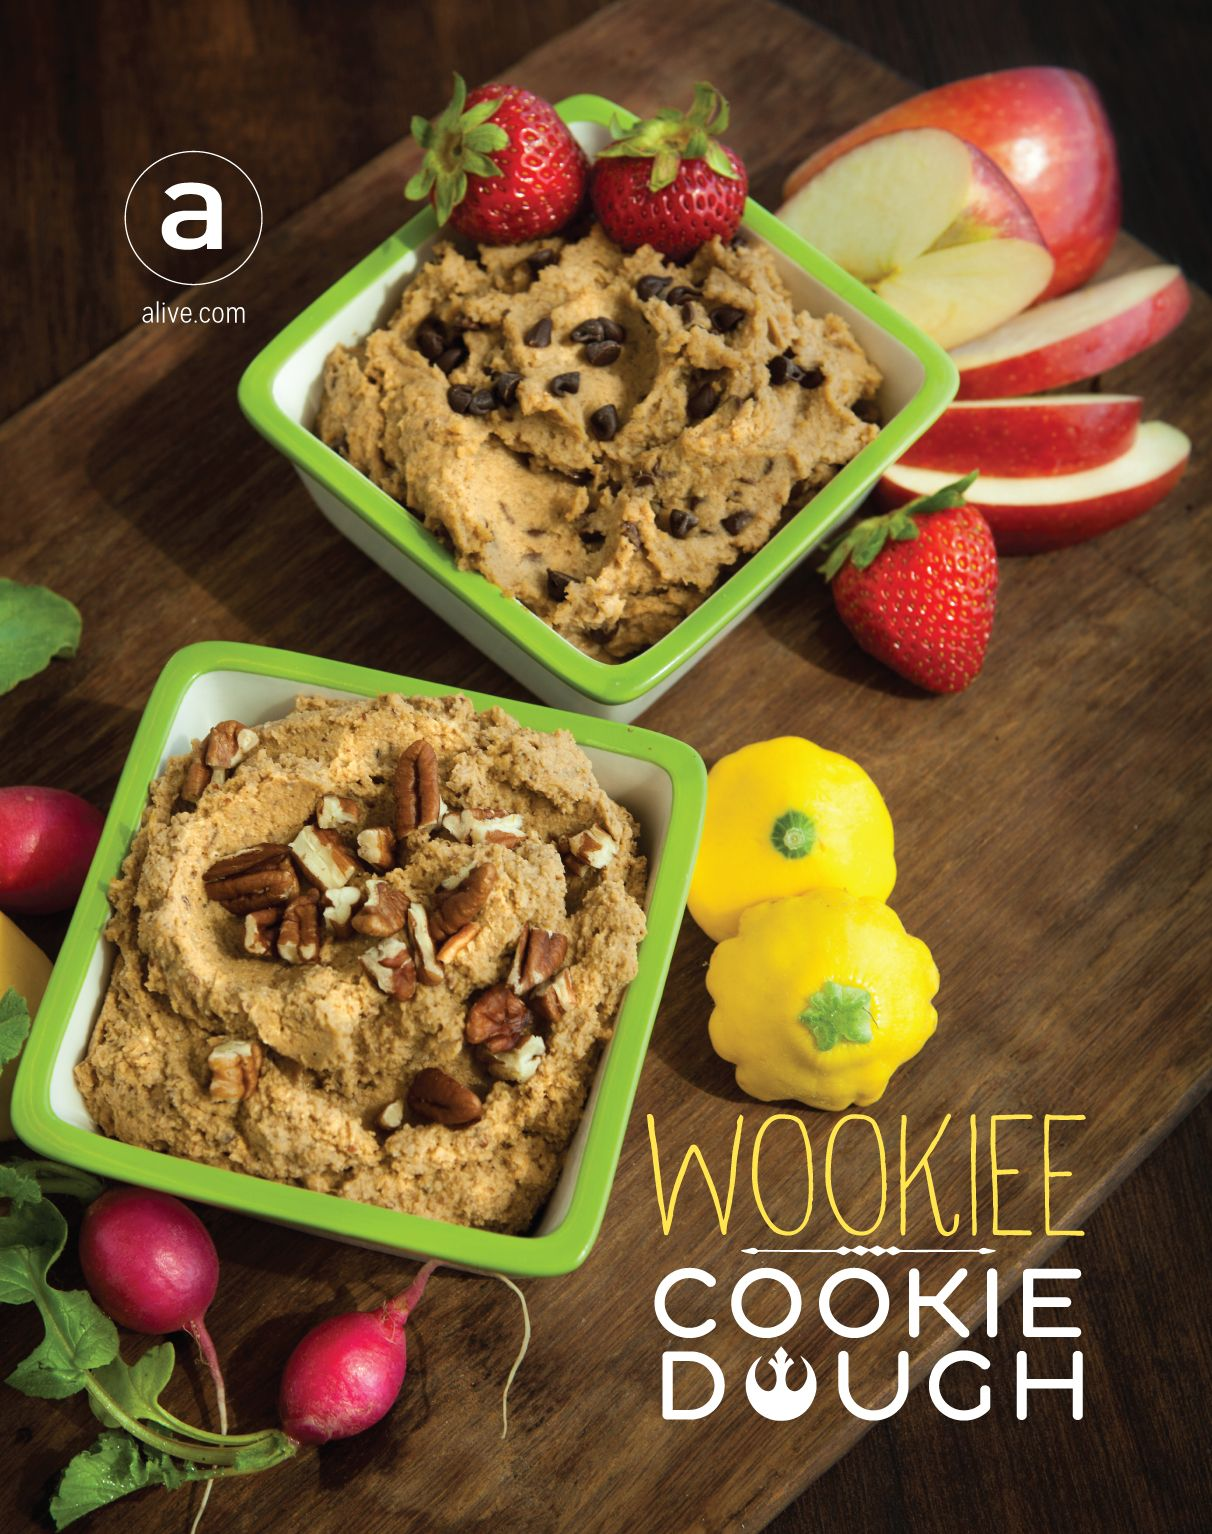 May the 4th be with you ... and may this vegan (Wookiee) Cookie Dough Hummus be in your tummy! #wookiee #starwars #maythe4th #theforceawakens